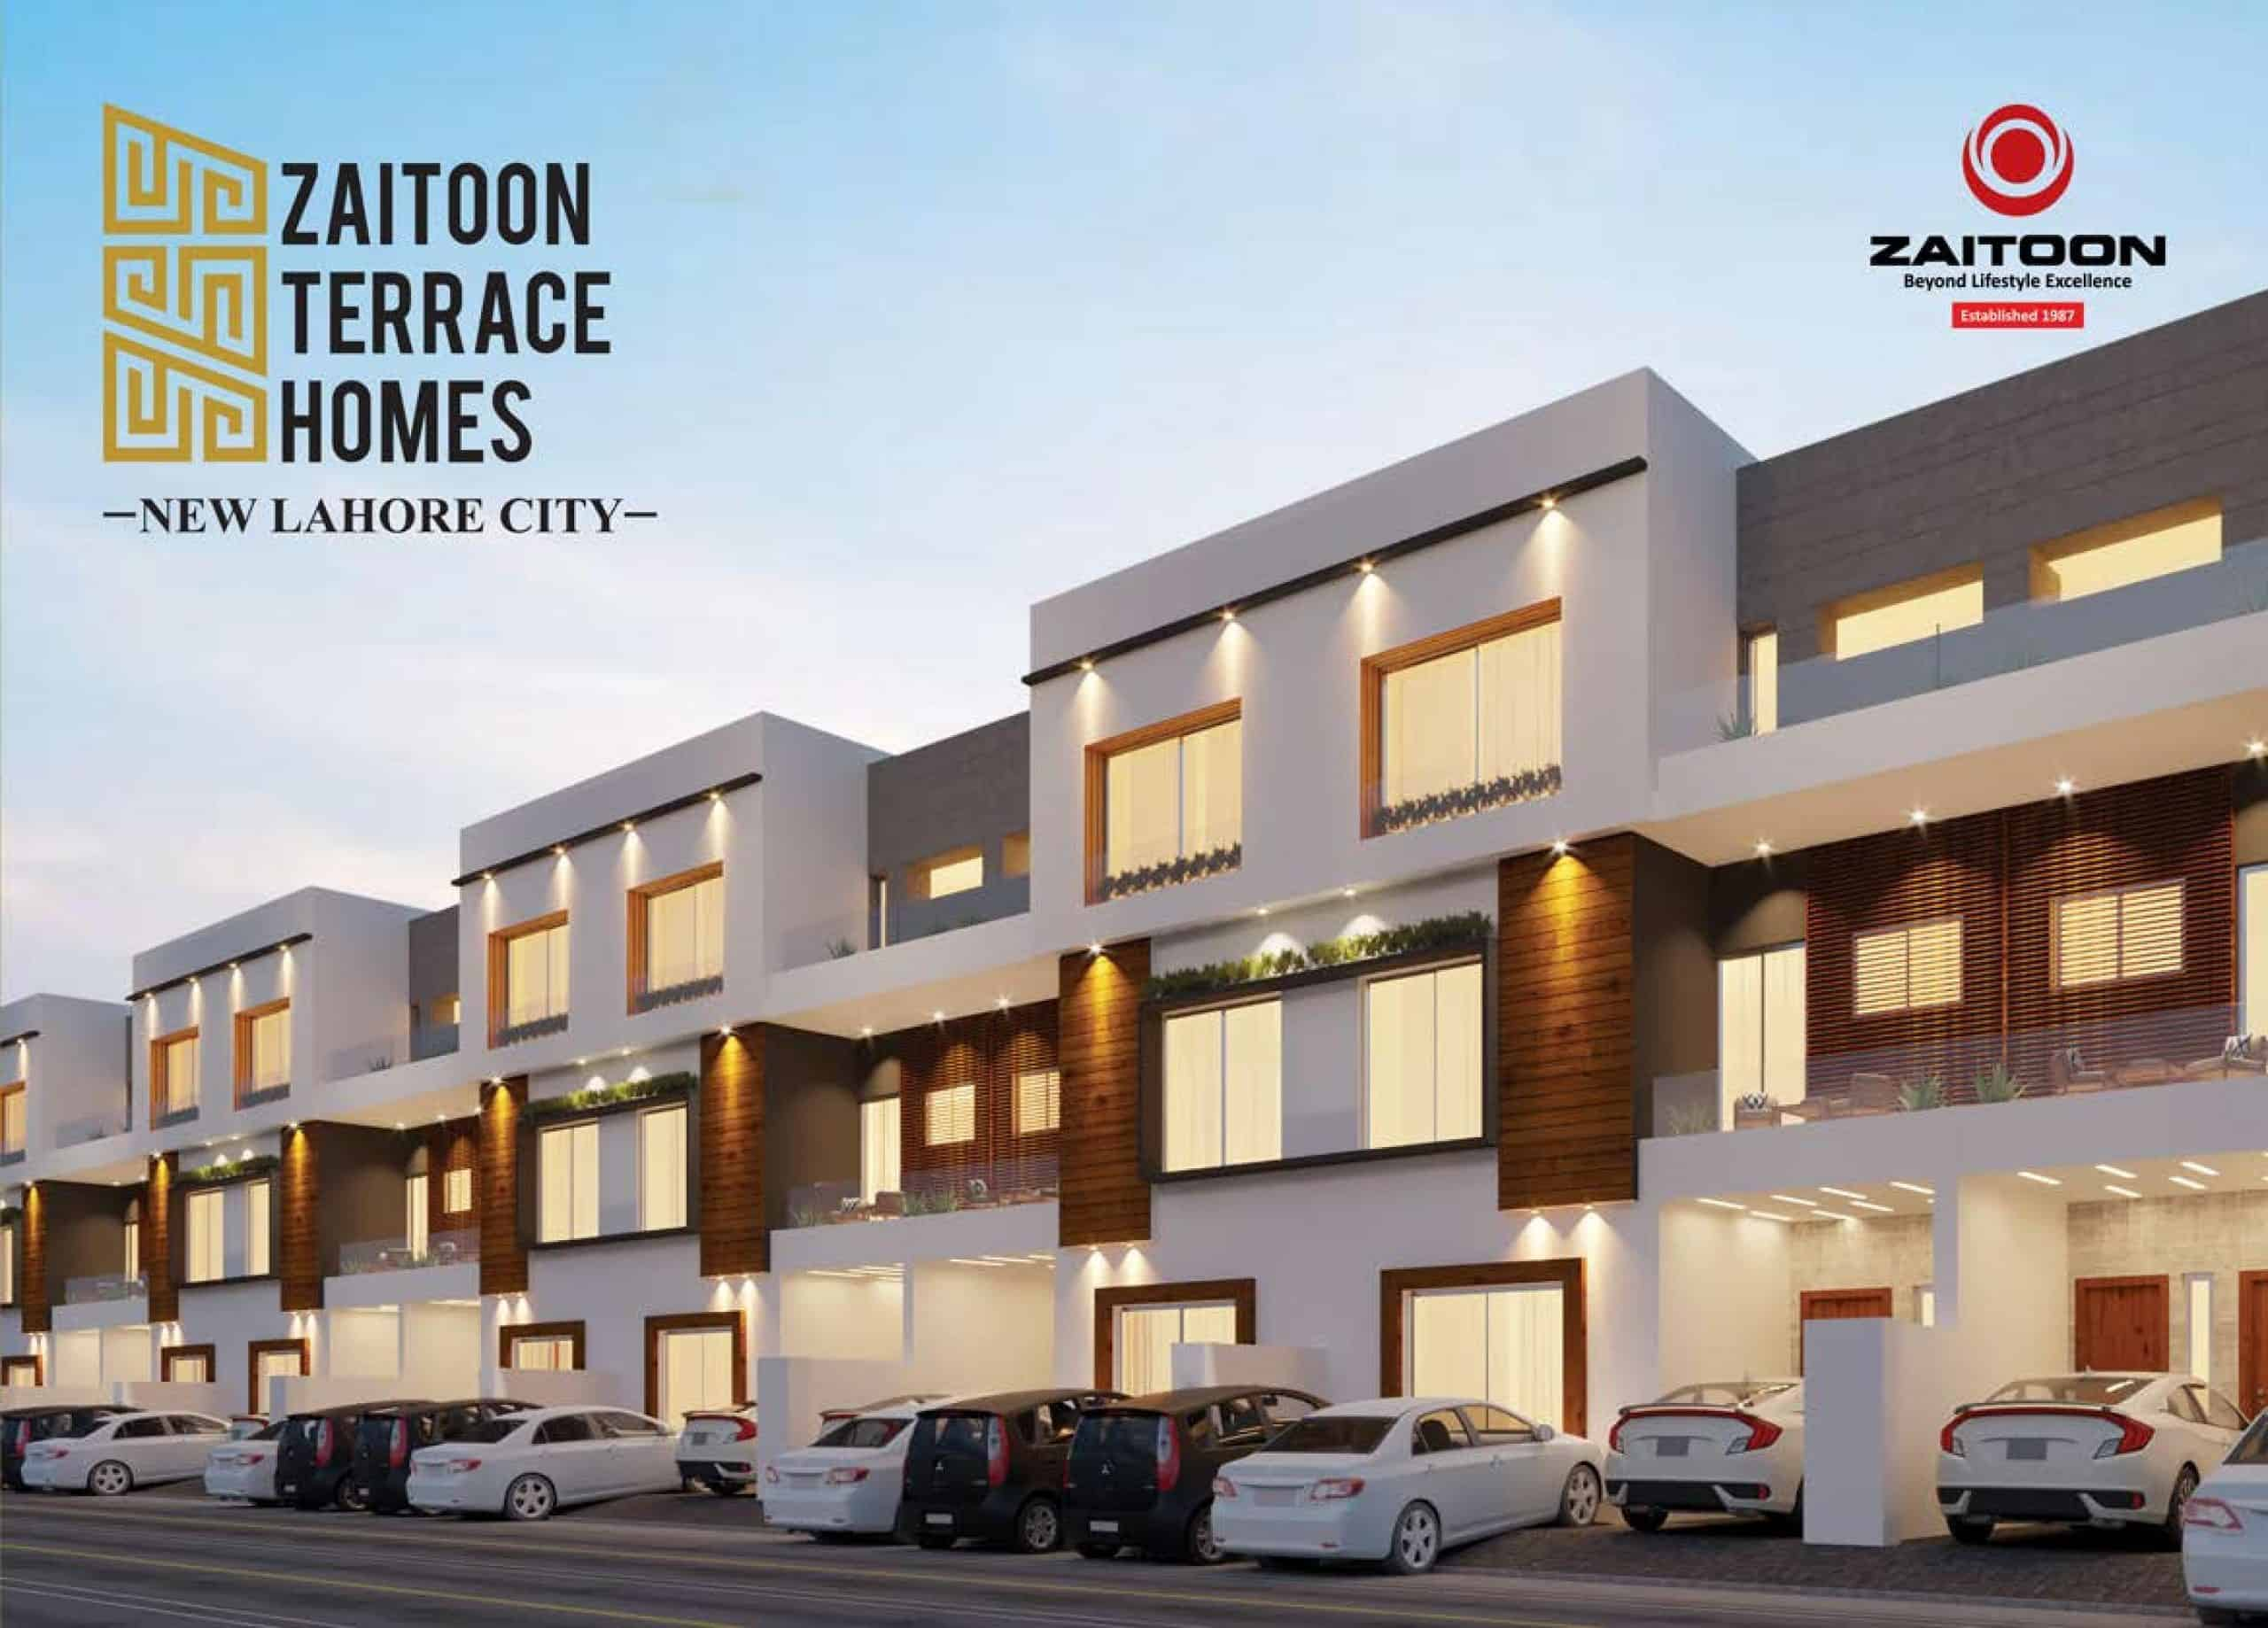 Low Price Homes in Lahore LDA Approved Society | Zaitoon Terrace Homes | New Lahore City